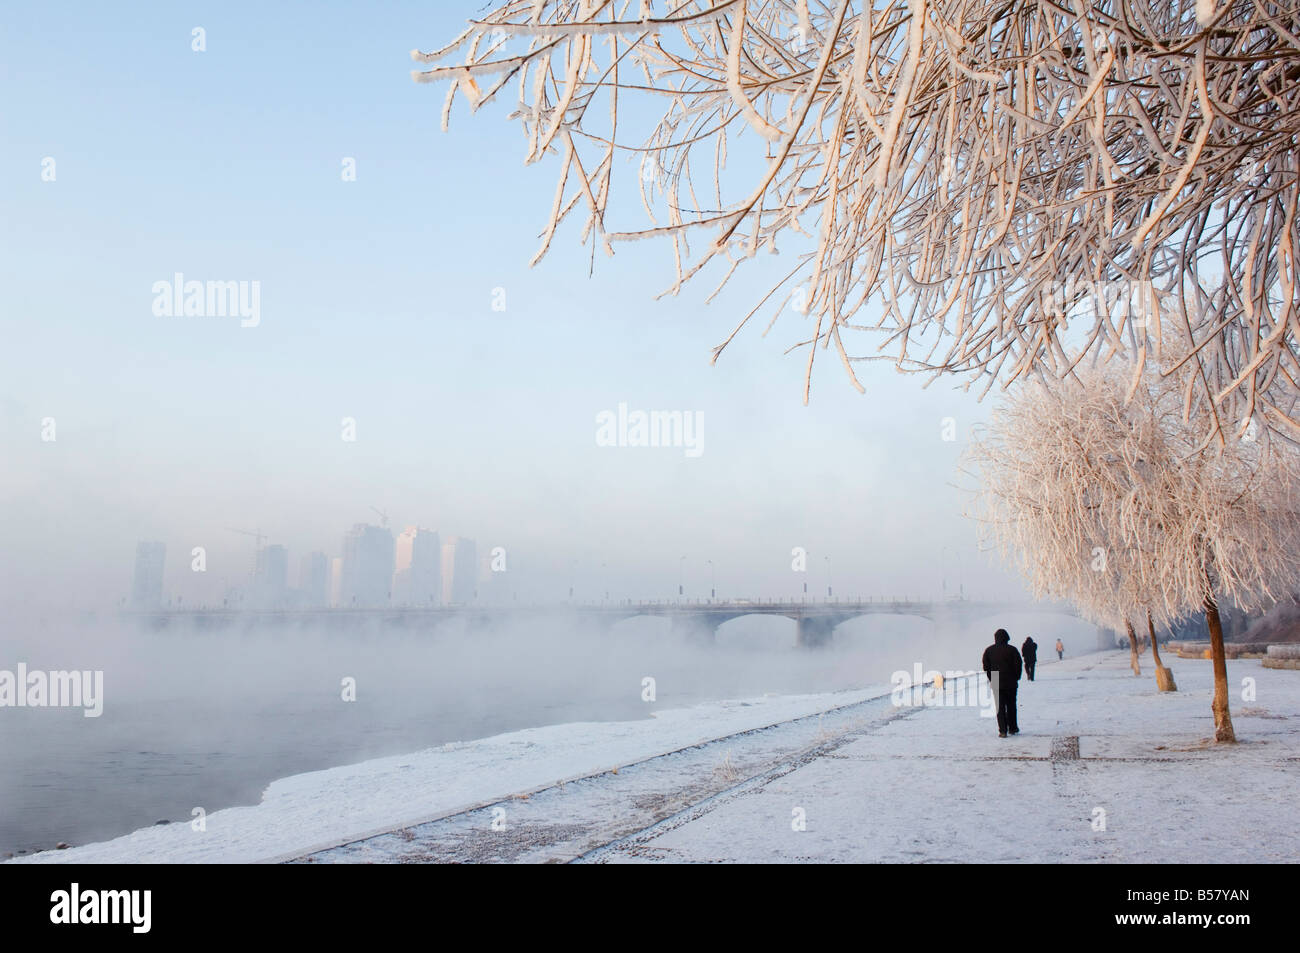 Mist rising off Songhua River and ice covered trees in winter, Jilin City, Jilin Province, Northeast China, China, - Stock Image